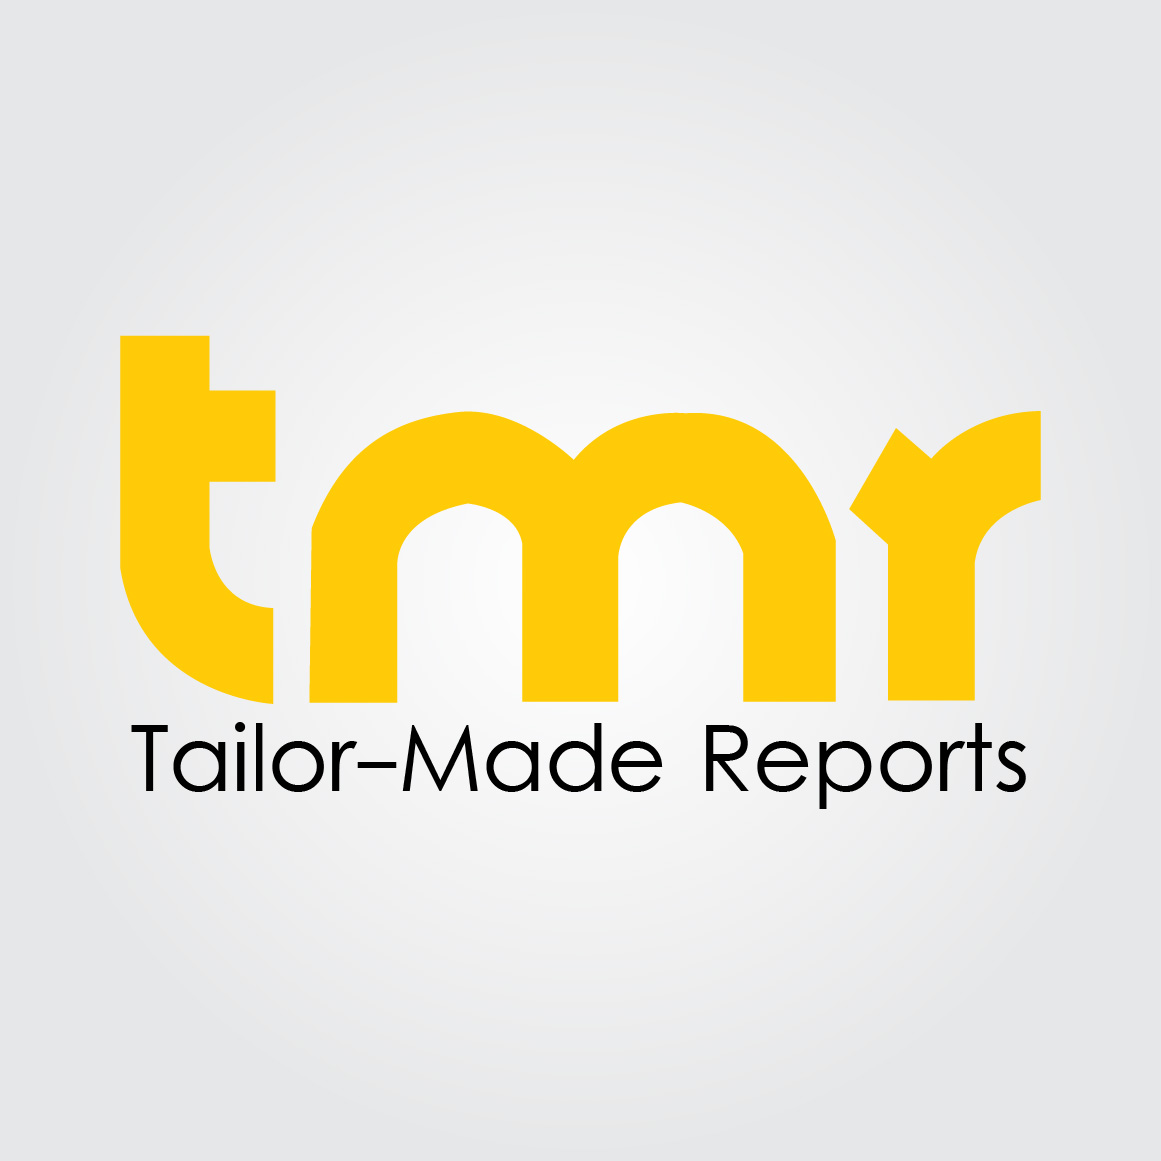 Tinnitus Market | Exclusive Report on the Latest Trends and Opportunities in the Market